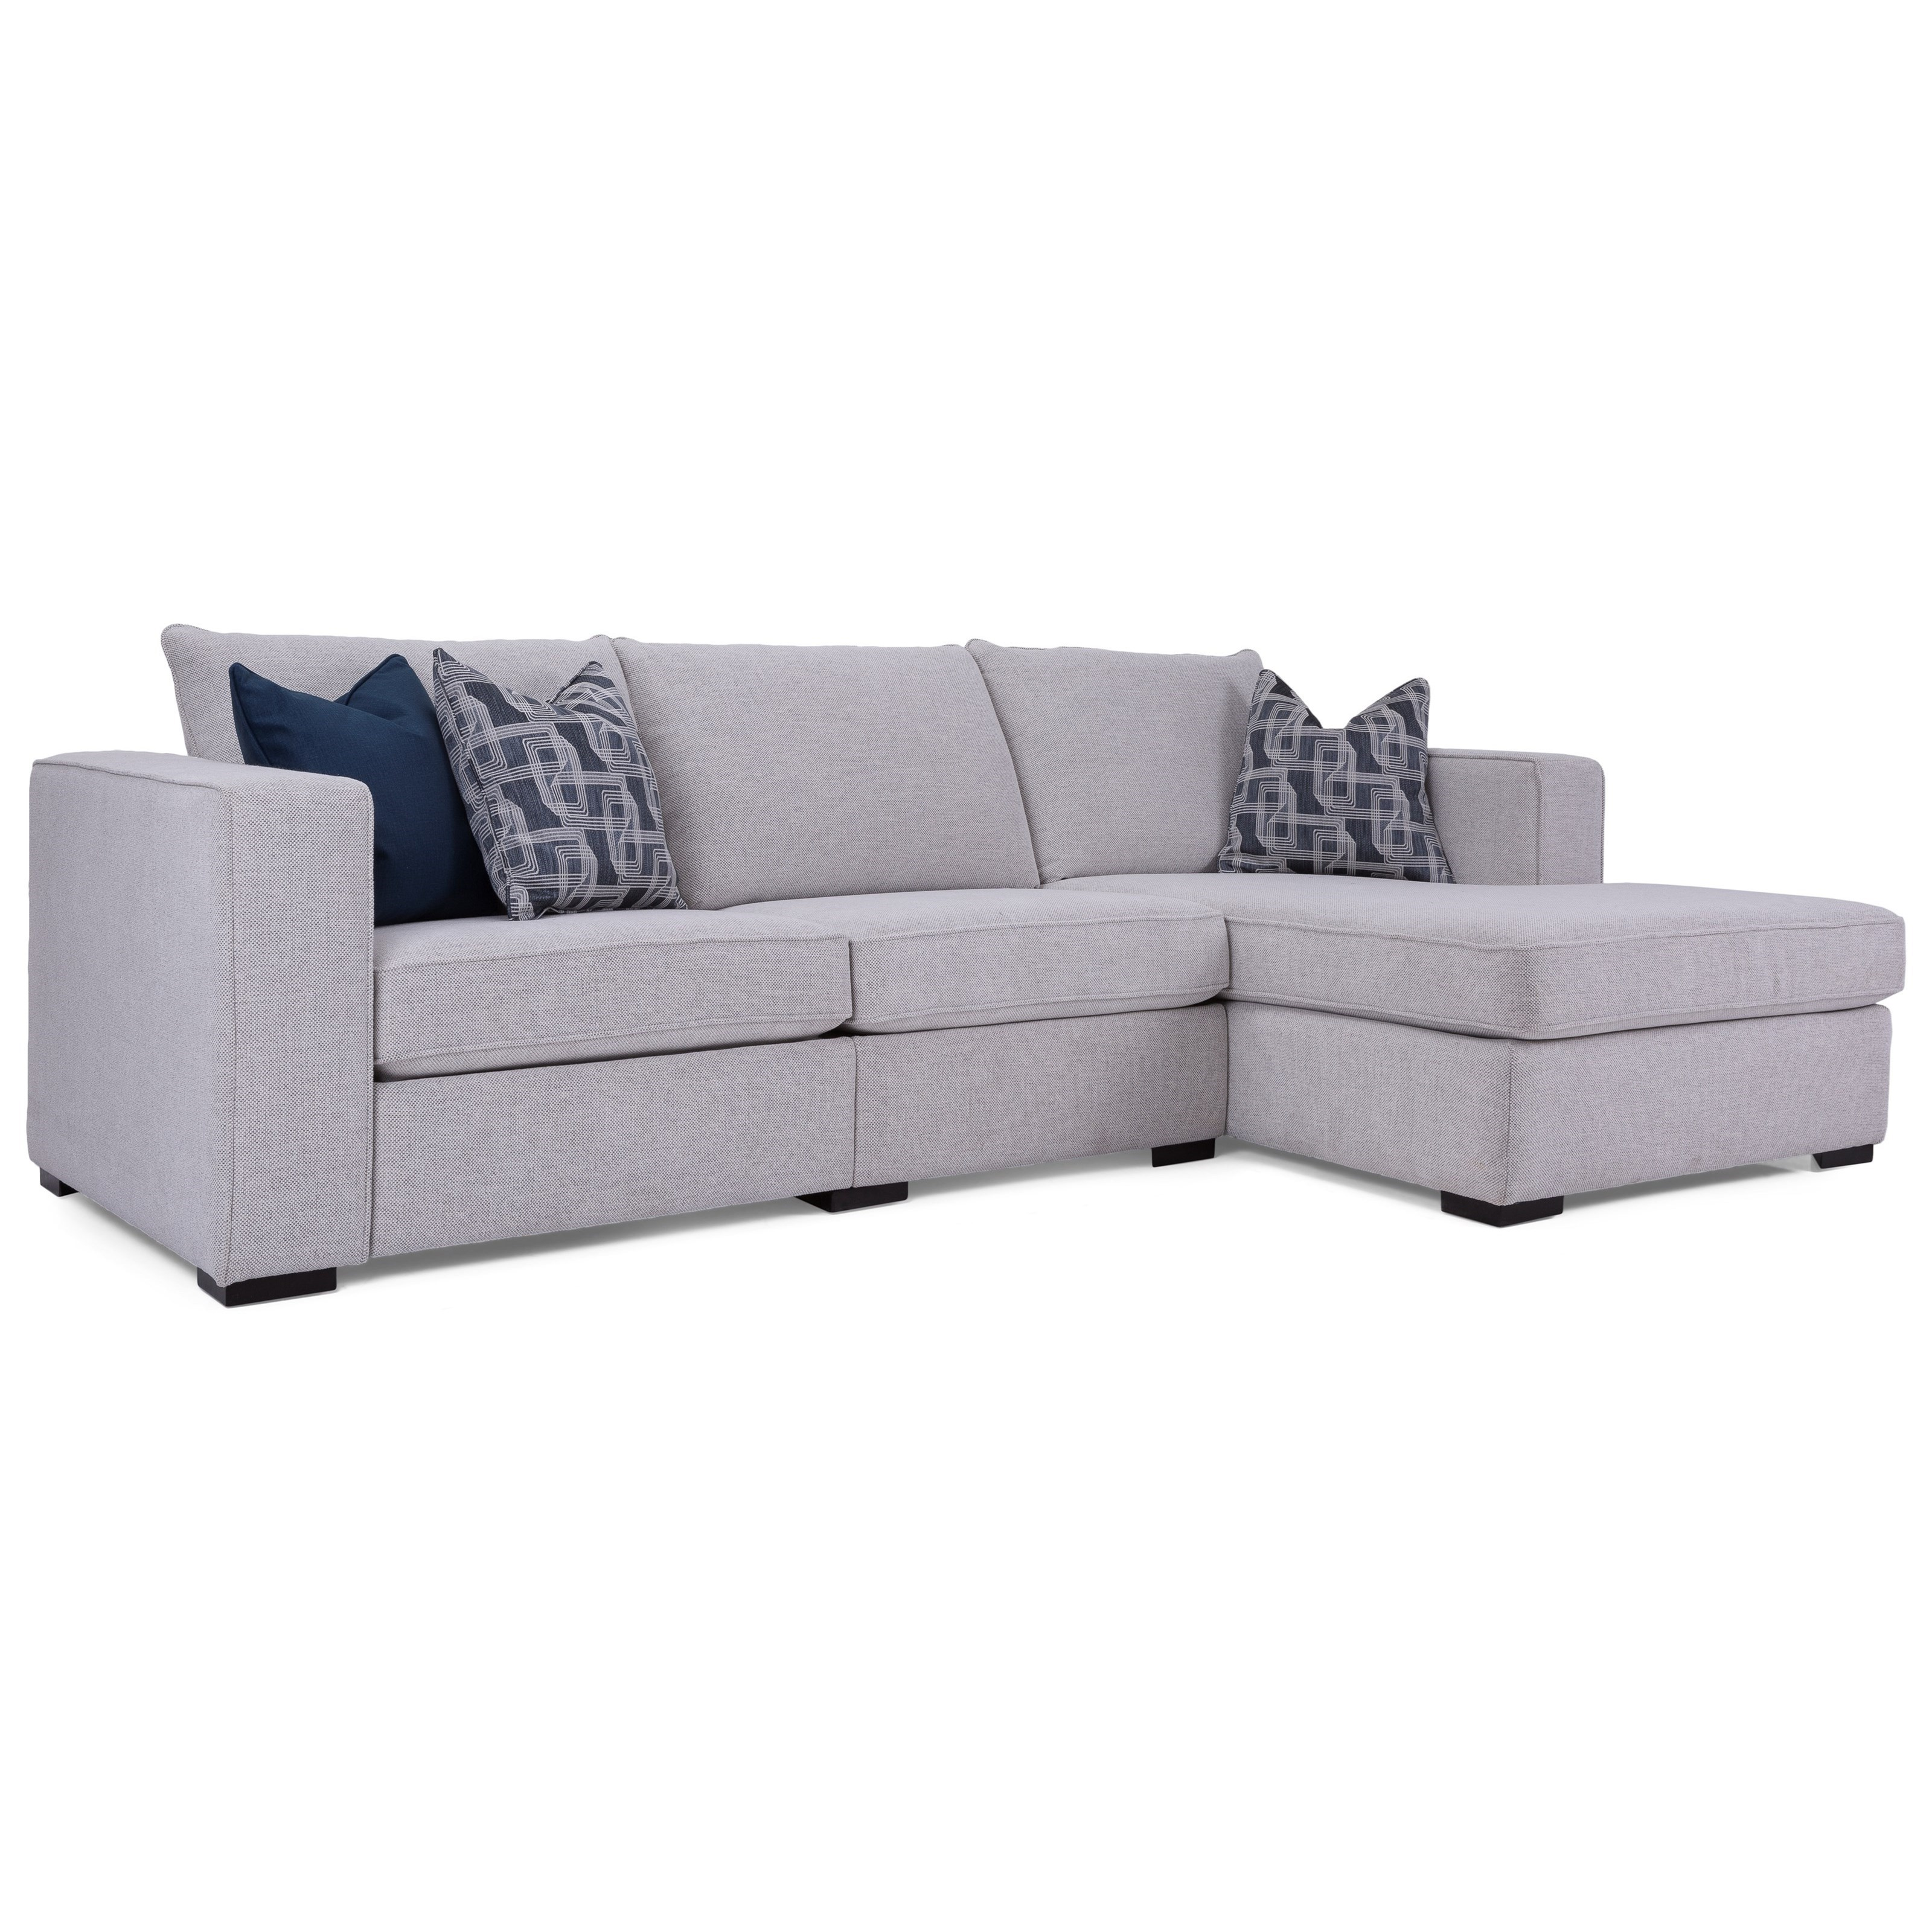 2900 Reclining Sofa with Chaise by Decor-Rest at Johnny Janosik